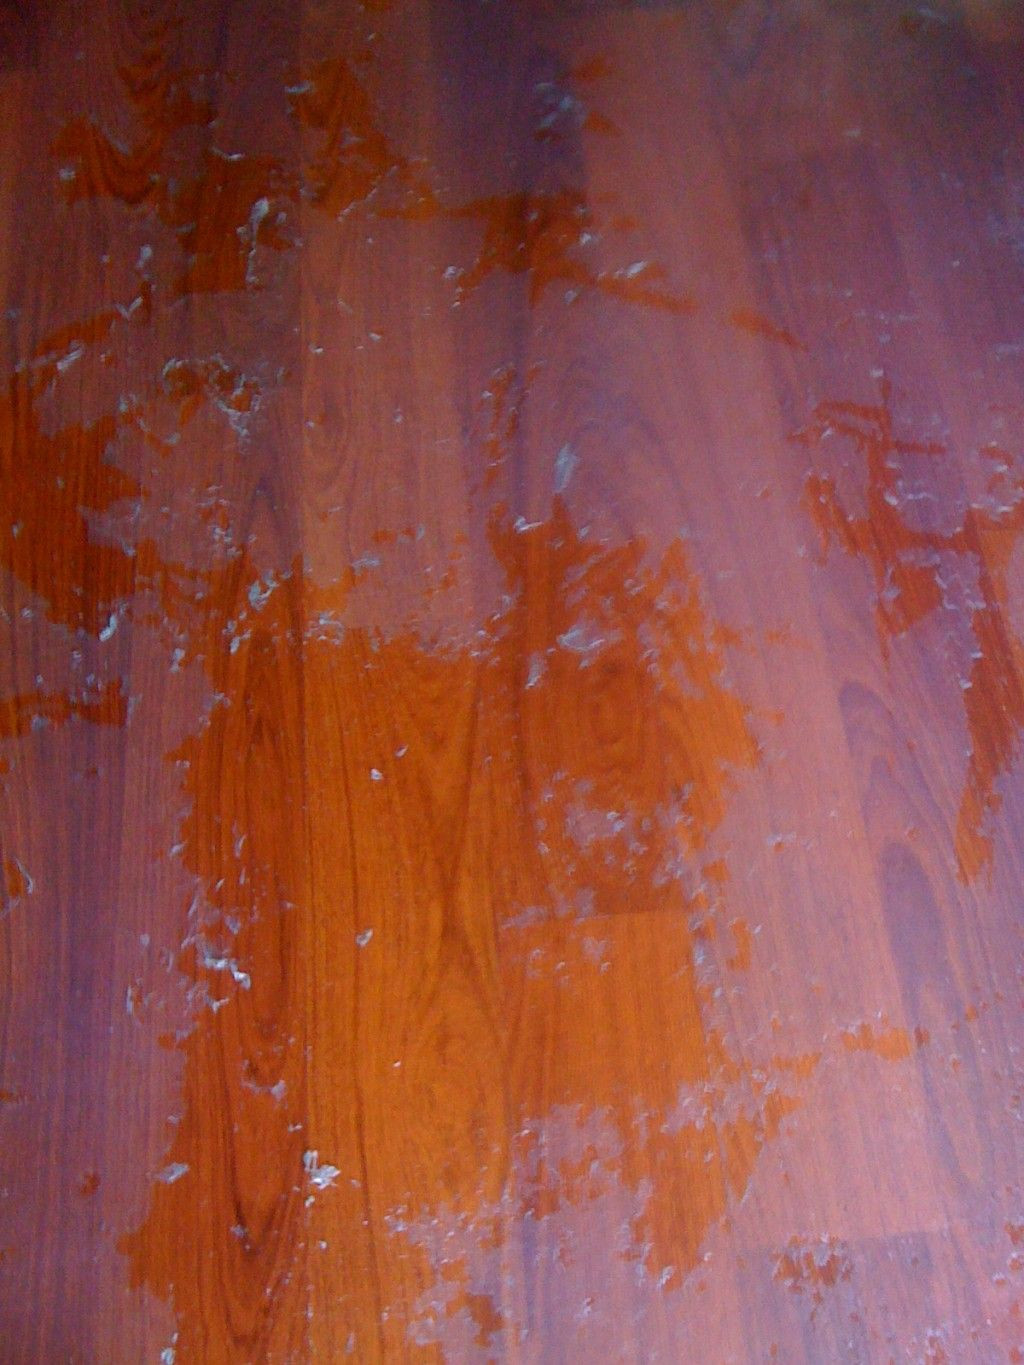 cleaning engineered hardwood floors with vinegar and water of how to remove wax and oil soap cleaners from wood floors recipes inside how to remove oily or wax build up from cleaning or polishing solutions from wood floors